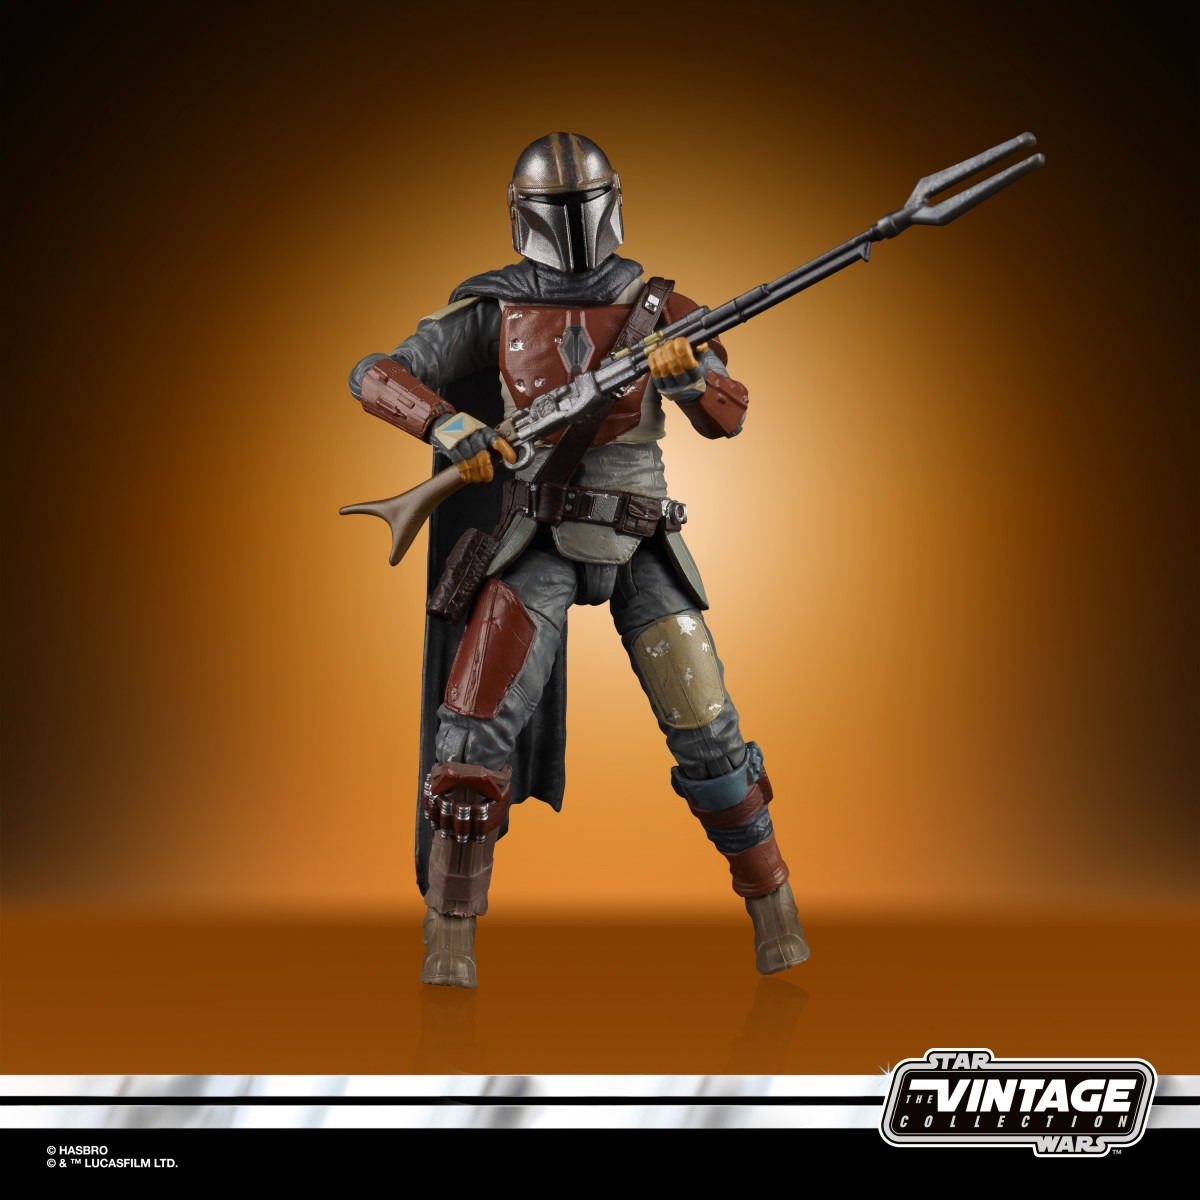 The Mandalorian joins Hasbro's Star Wars: The Vintage Collection